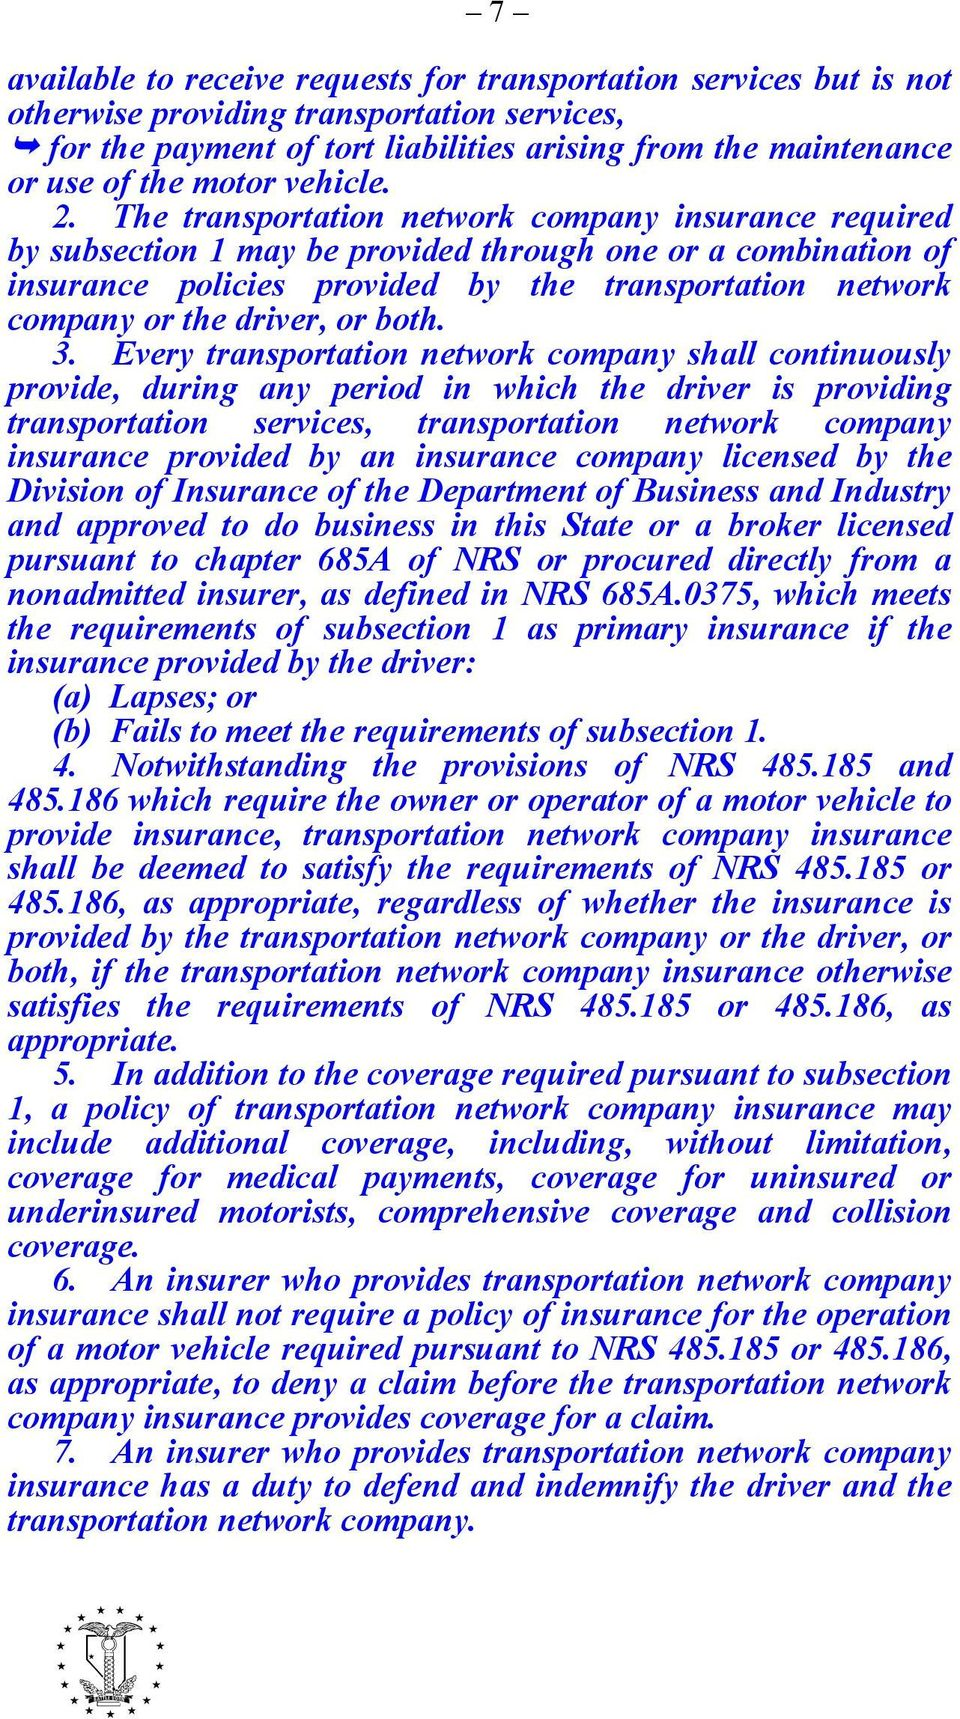 The transportation network company insurance required by subsection 1 may be provided through one or a combination of insurance policies provided by the transportation network company or the driver,